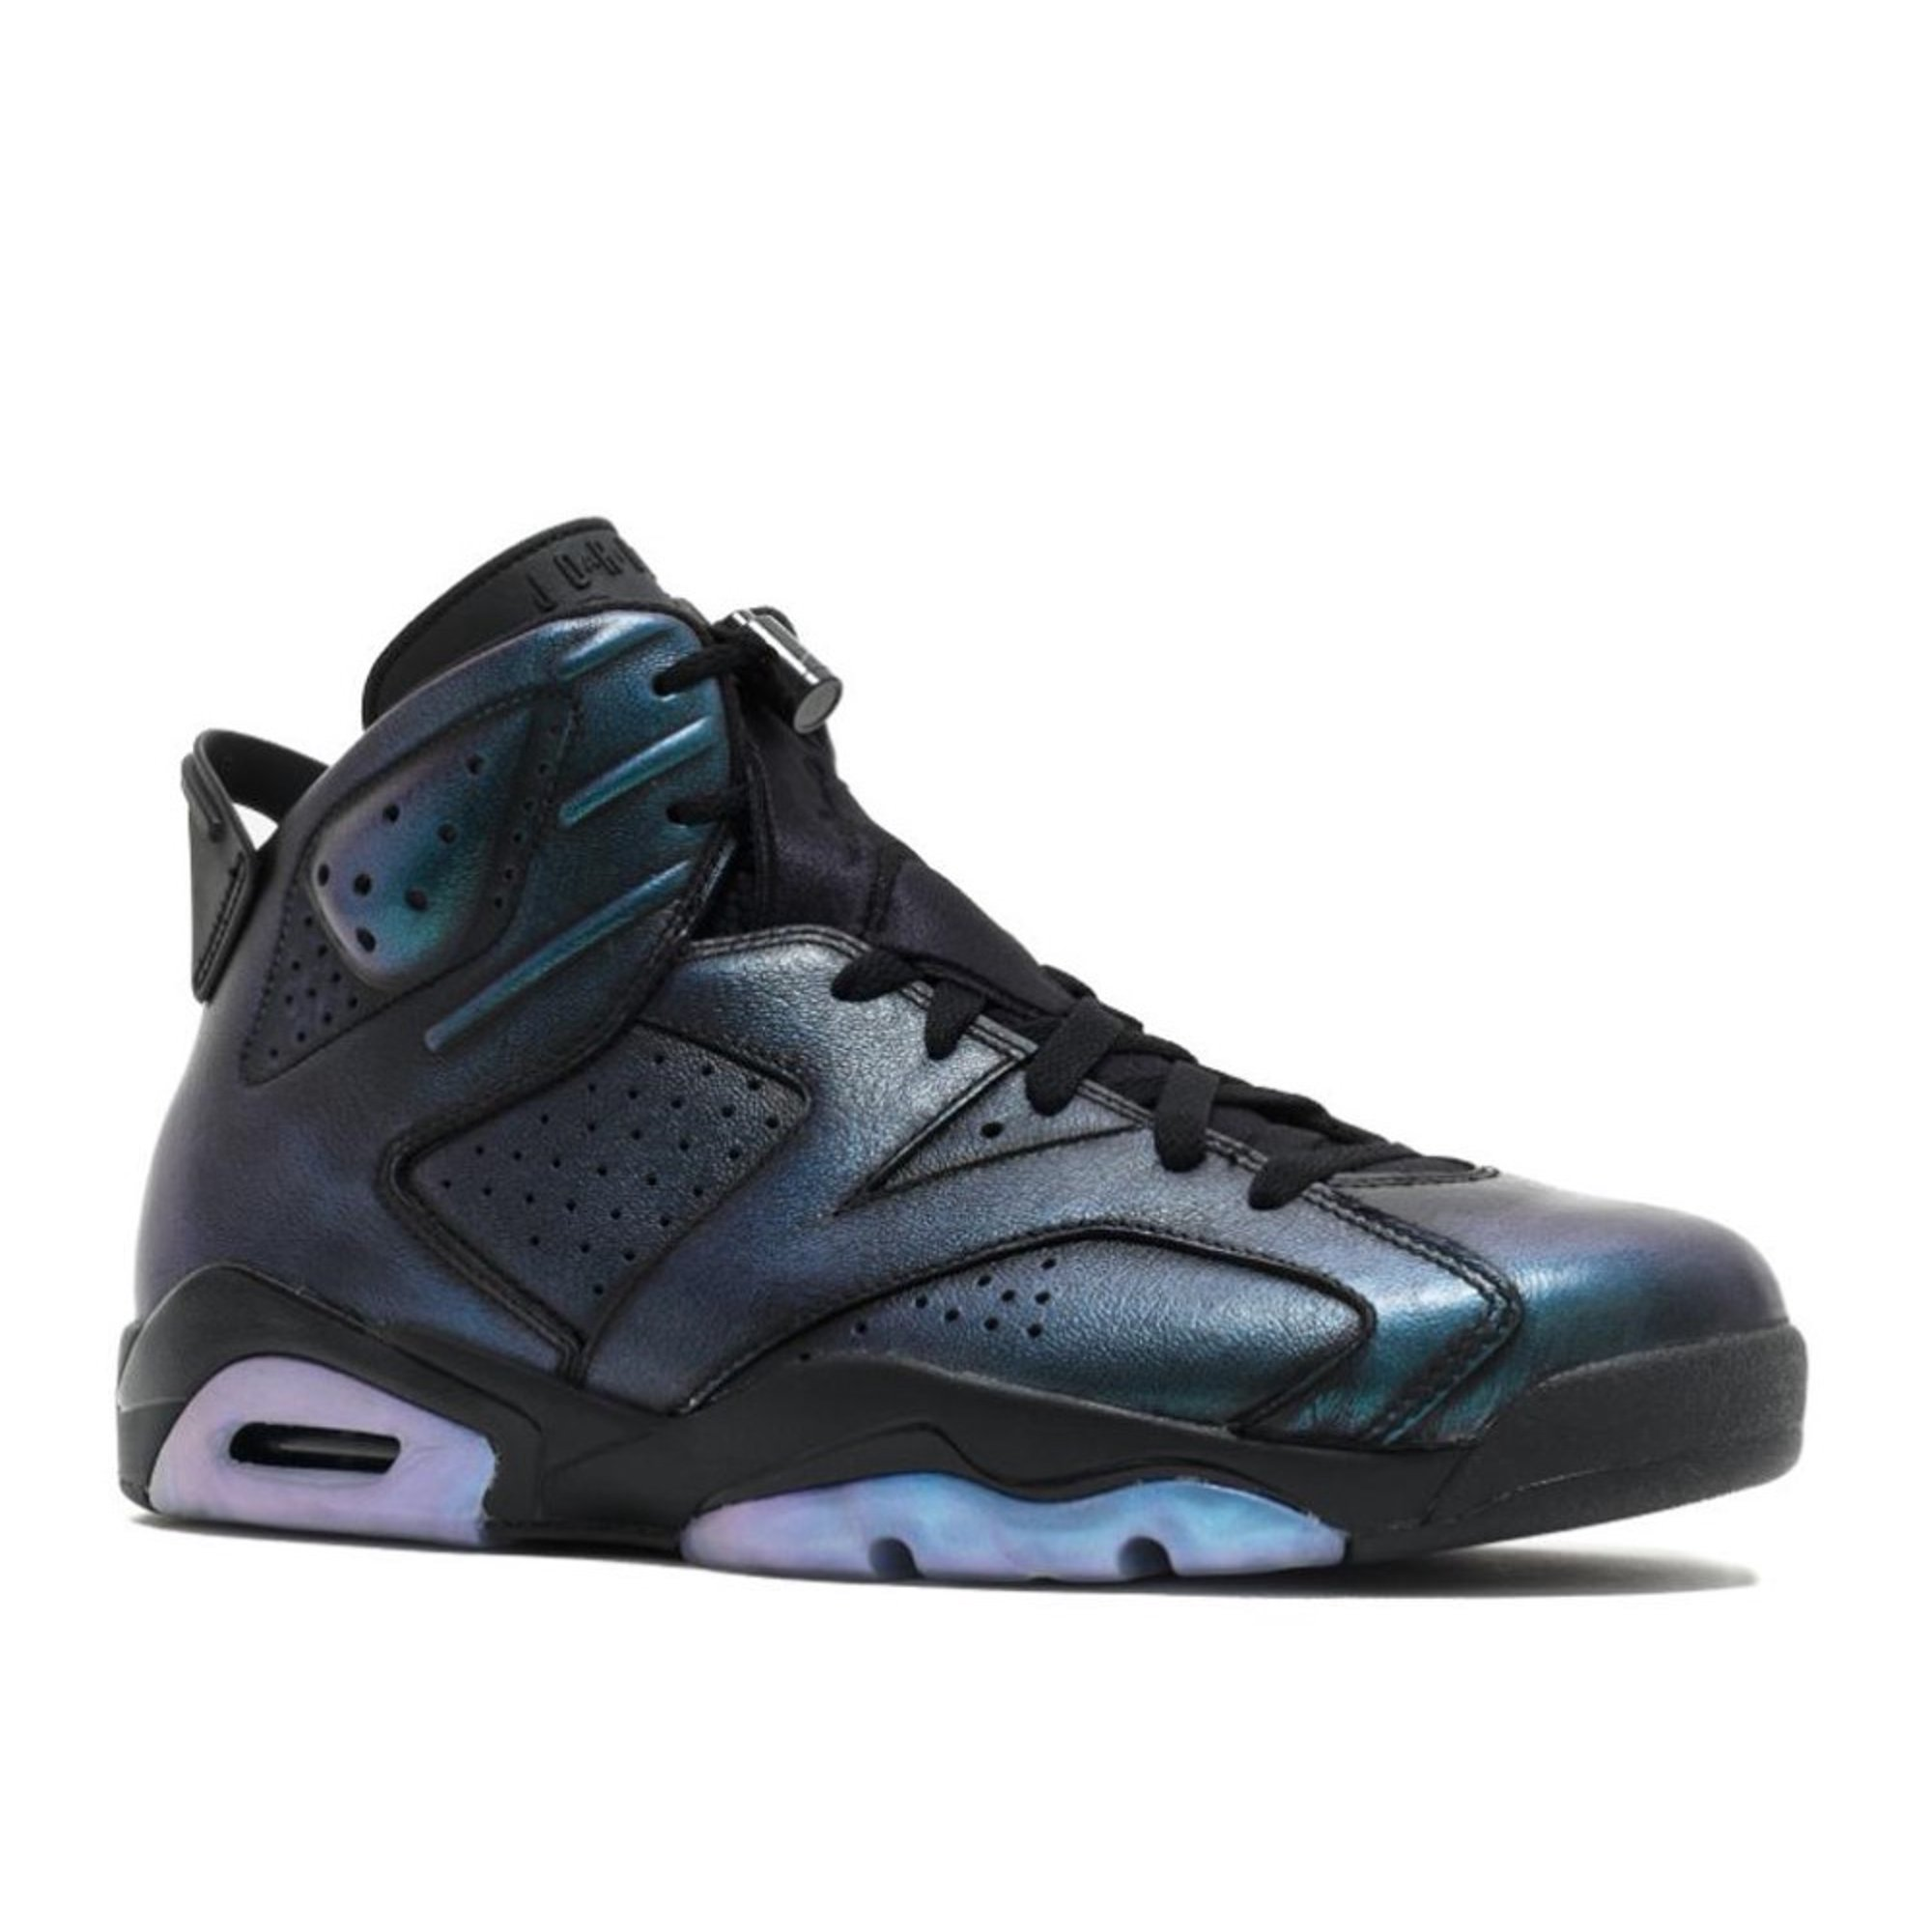 separation shoes 141be 0d44a Air Jordan - Men - Air Jordan 6 Retro As 'All Star' - 907961-015 - Size 11.5